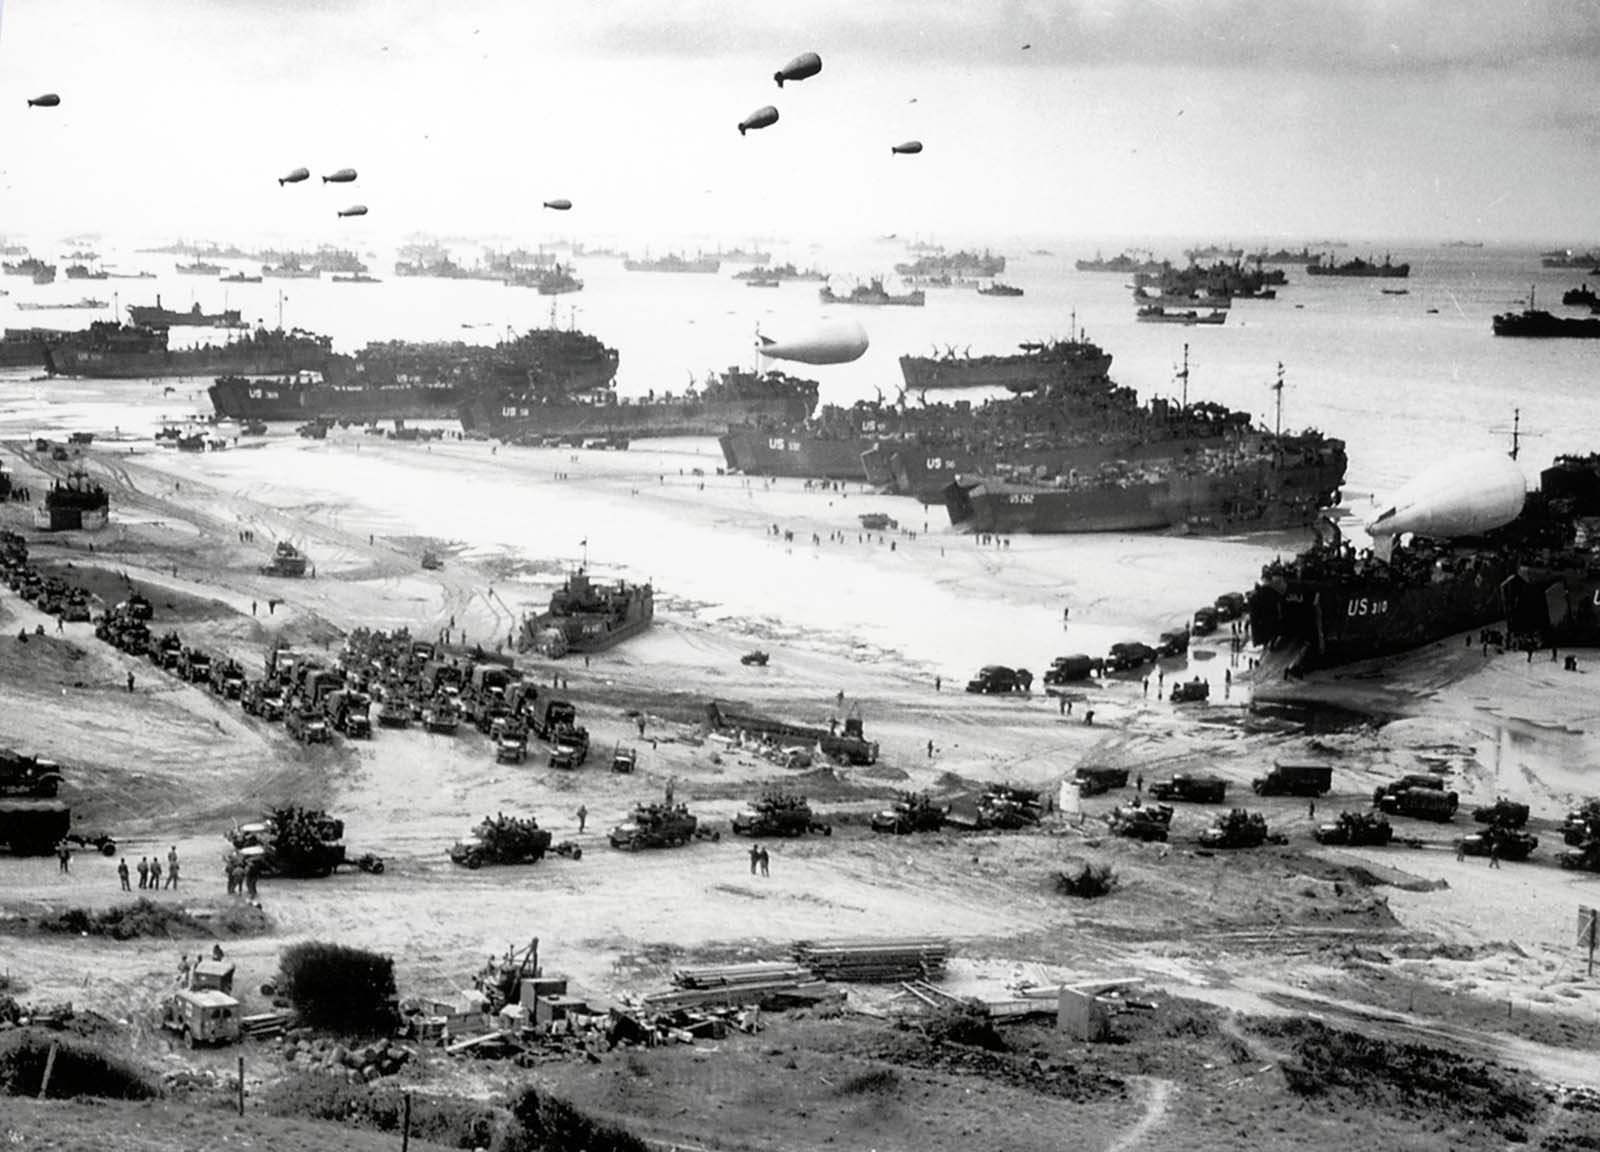 On June 6, 1944, the Allies invade Western Europe in the largest amphibious attack in history.